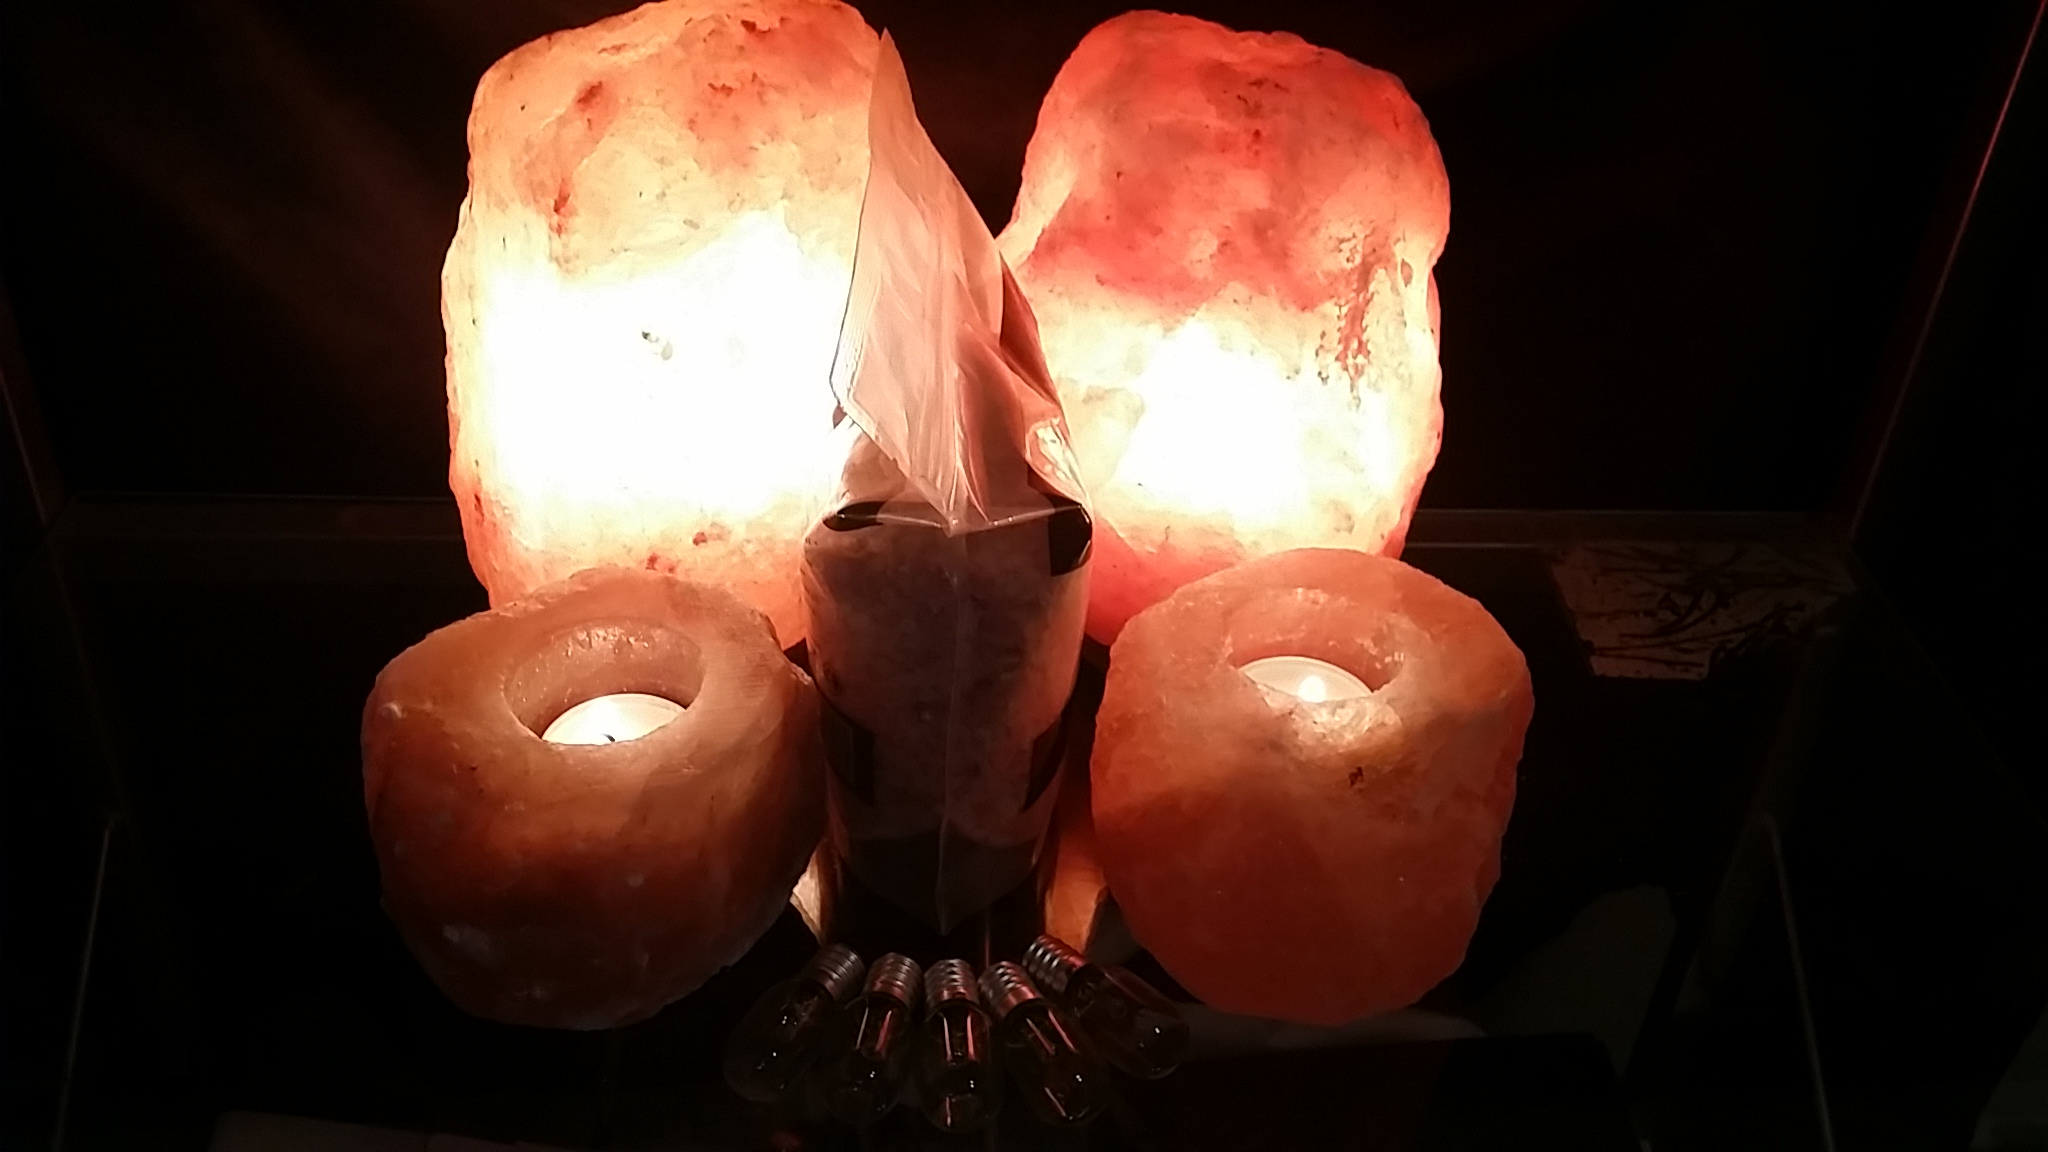 Salt Lamps Wet : New Products : Salt Lamps Australia, Himalayan Salt Lamps & other Elements of the Earth.